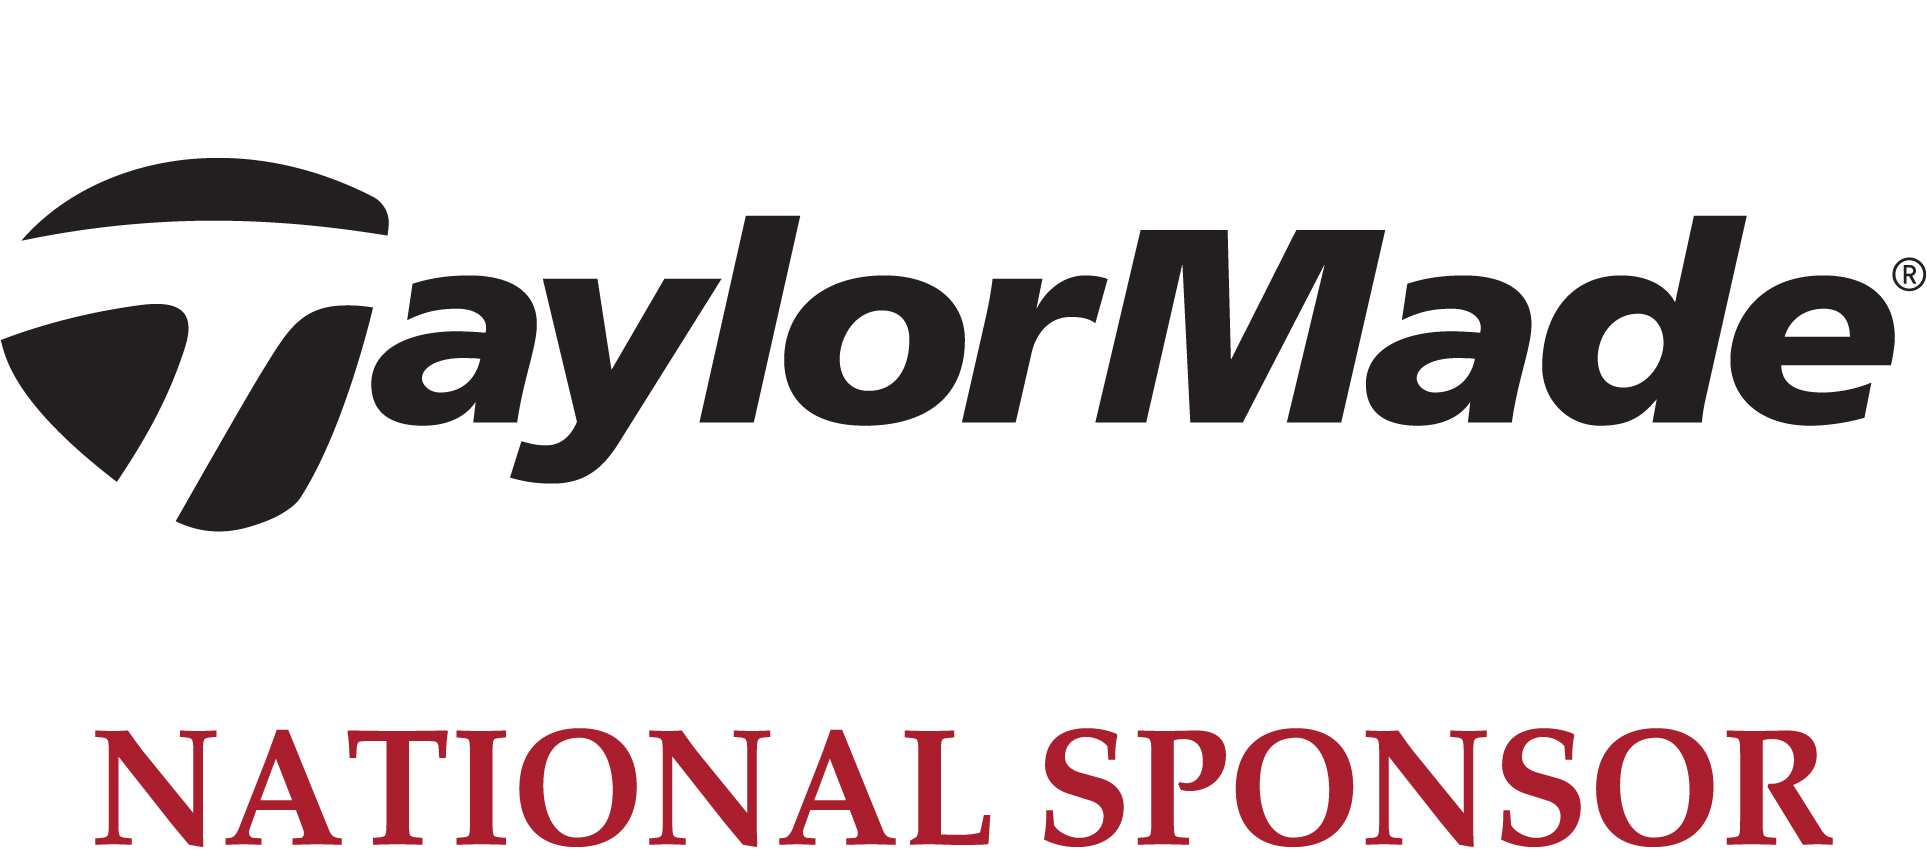 TaylorMade Golf, National Sponsor of the AJGA